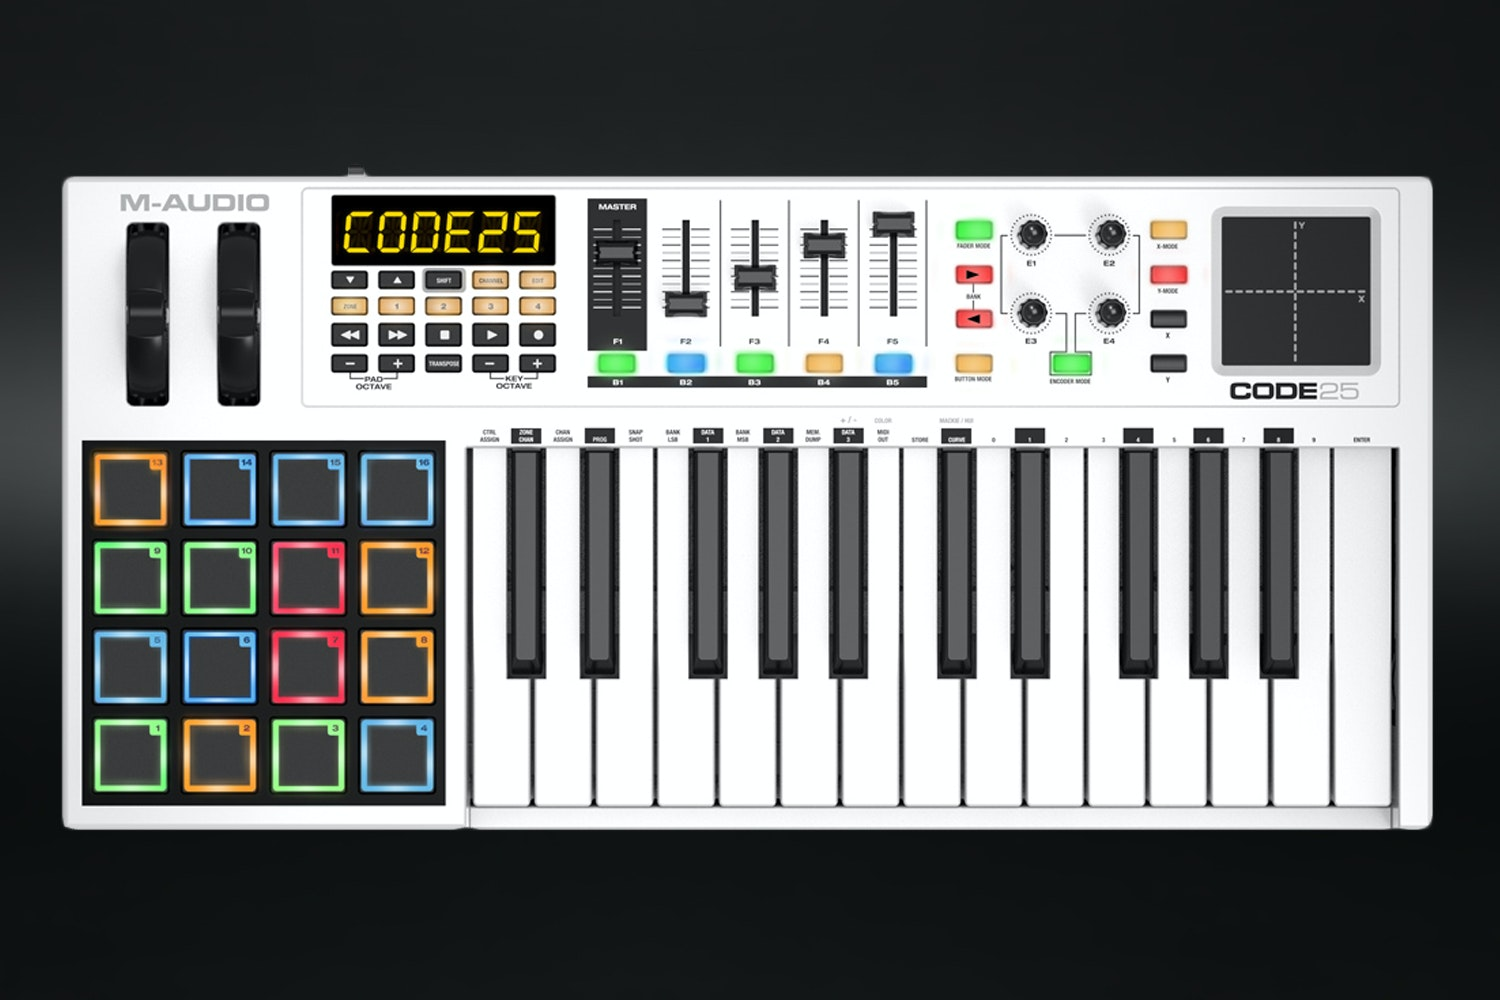 M-Audio Code USB MIDI Keyboard Controller